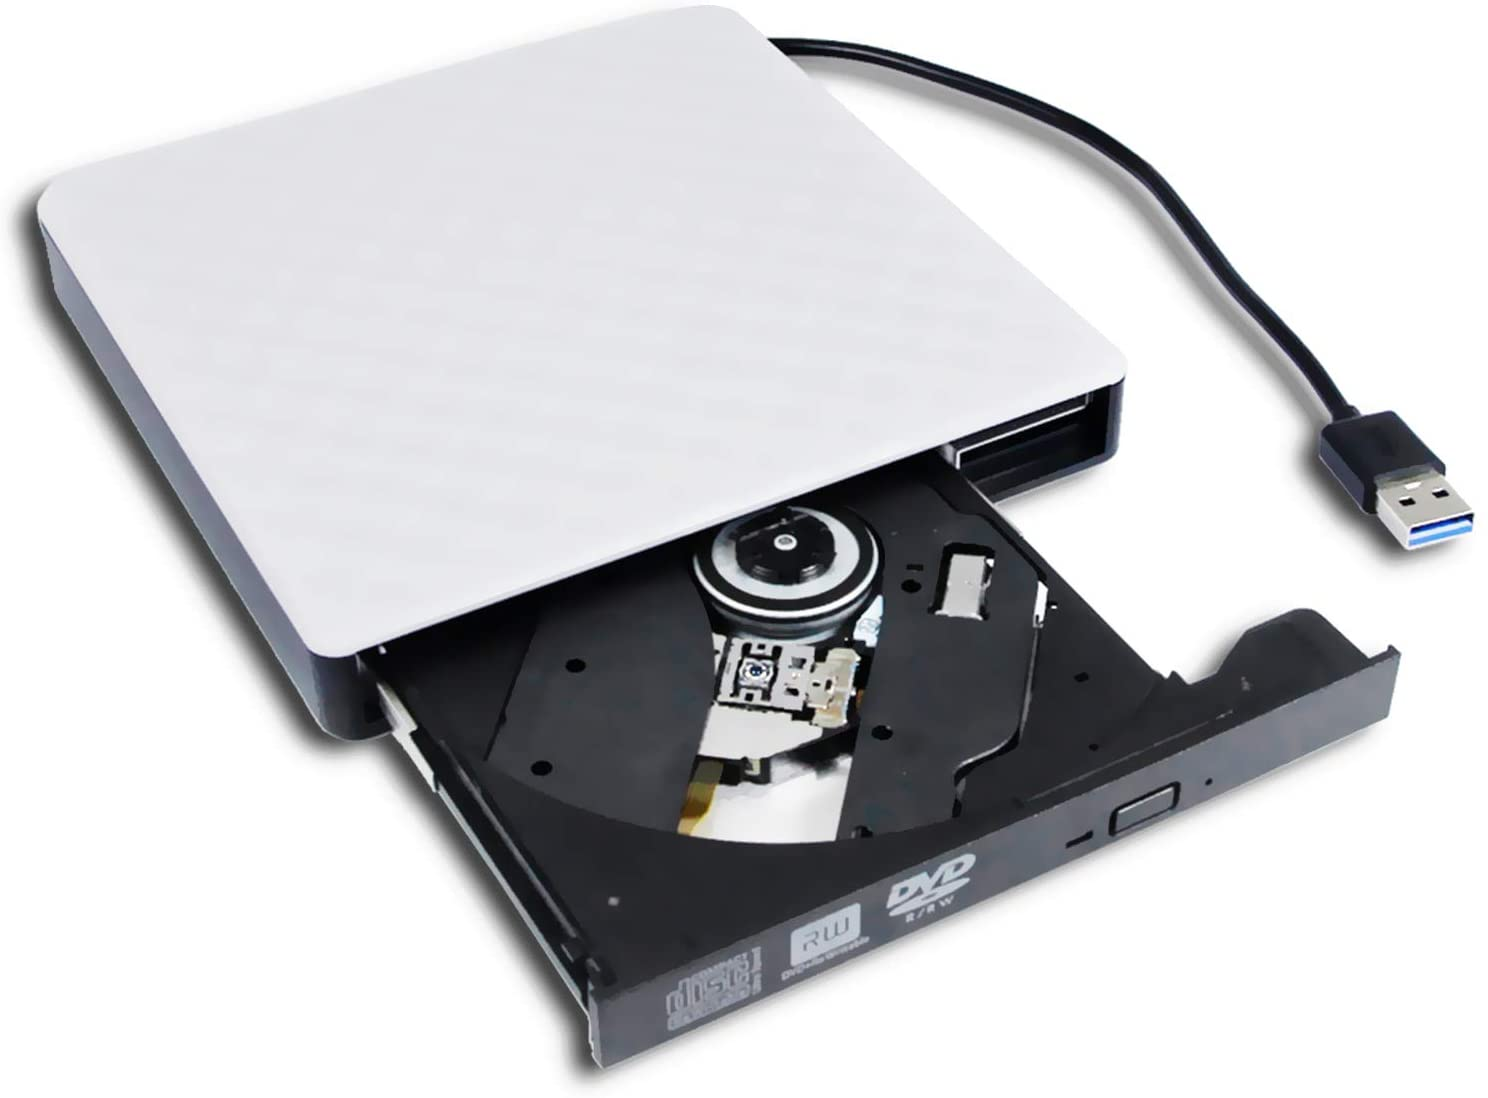 USB 2.0 External CD//DVD Drive for Asus A53e-eh71